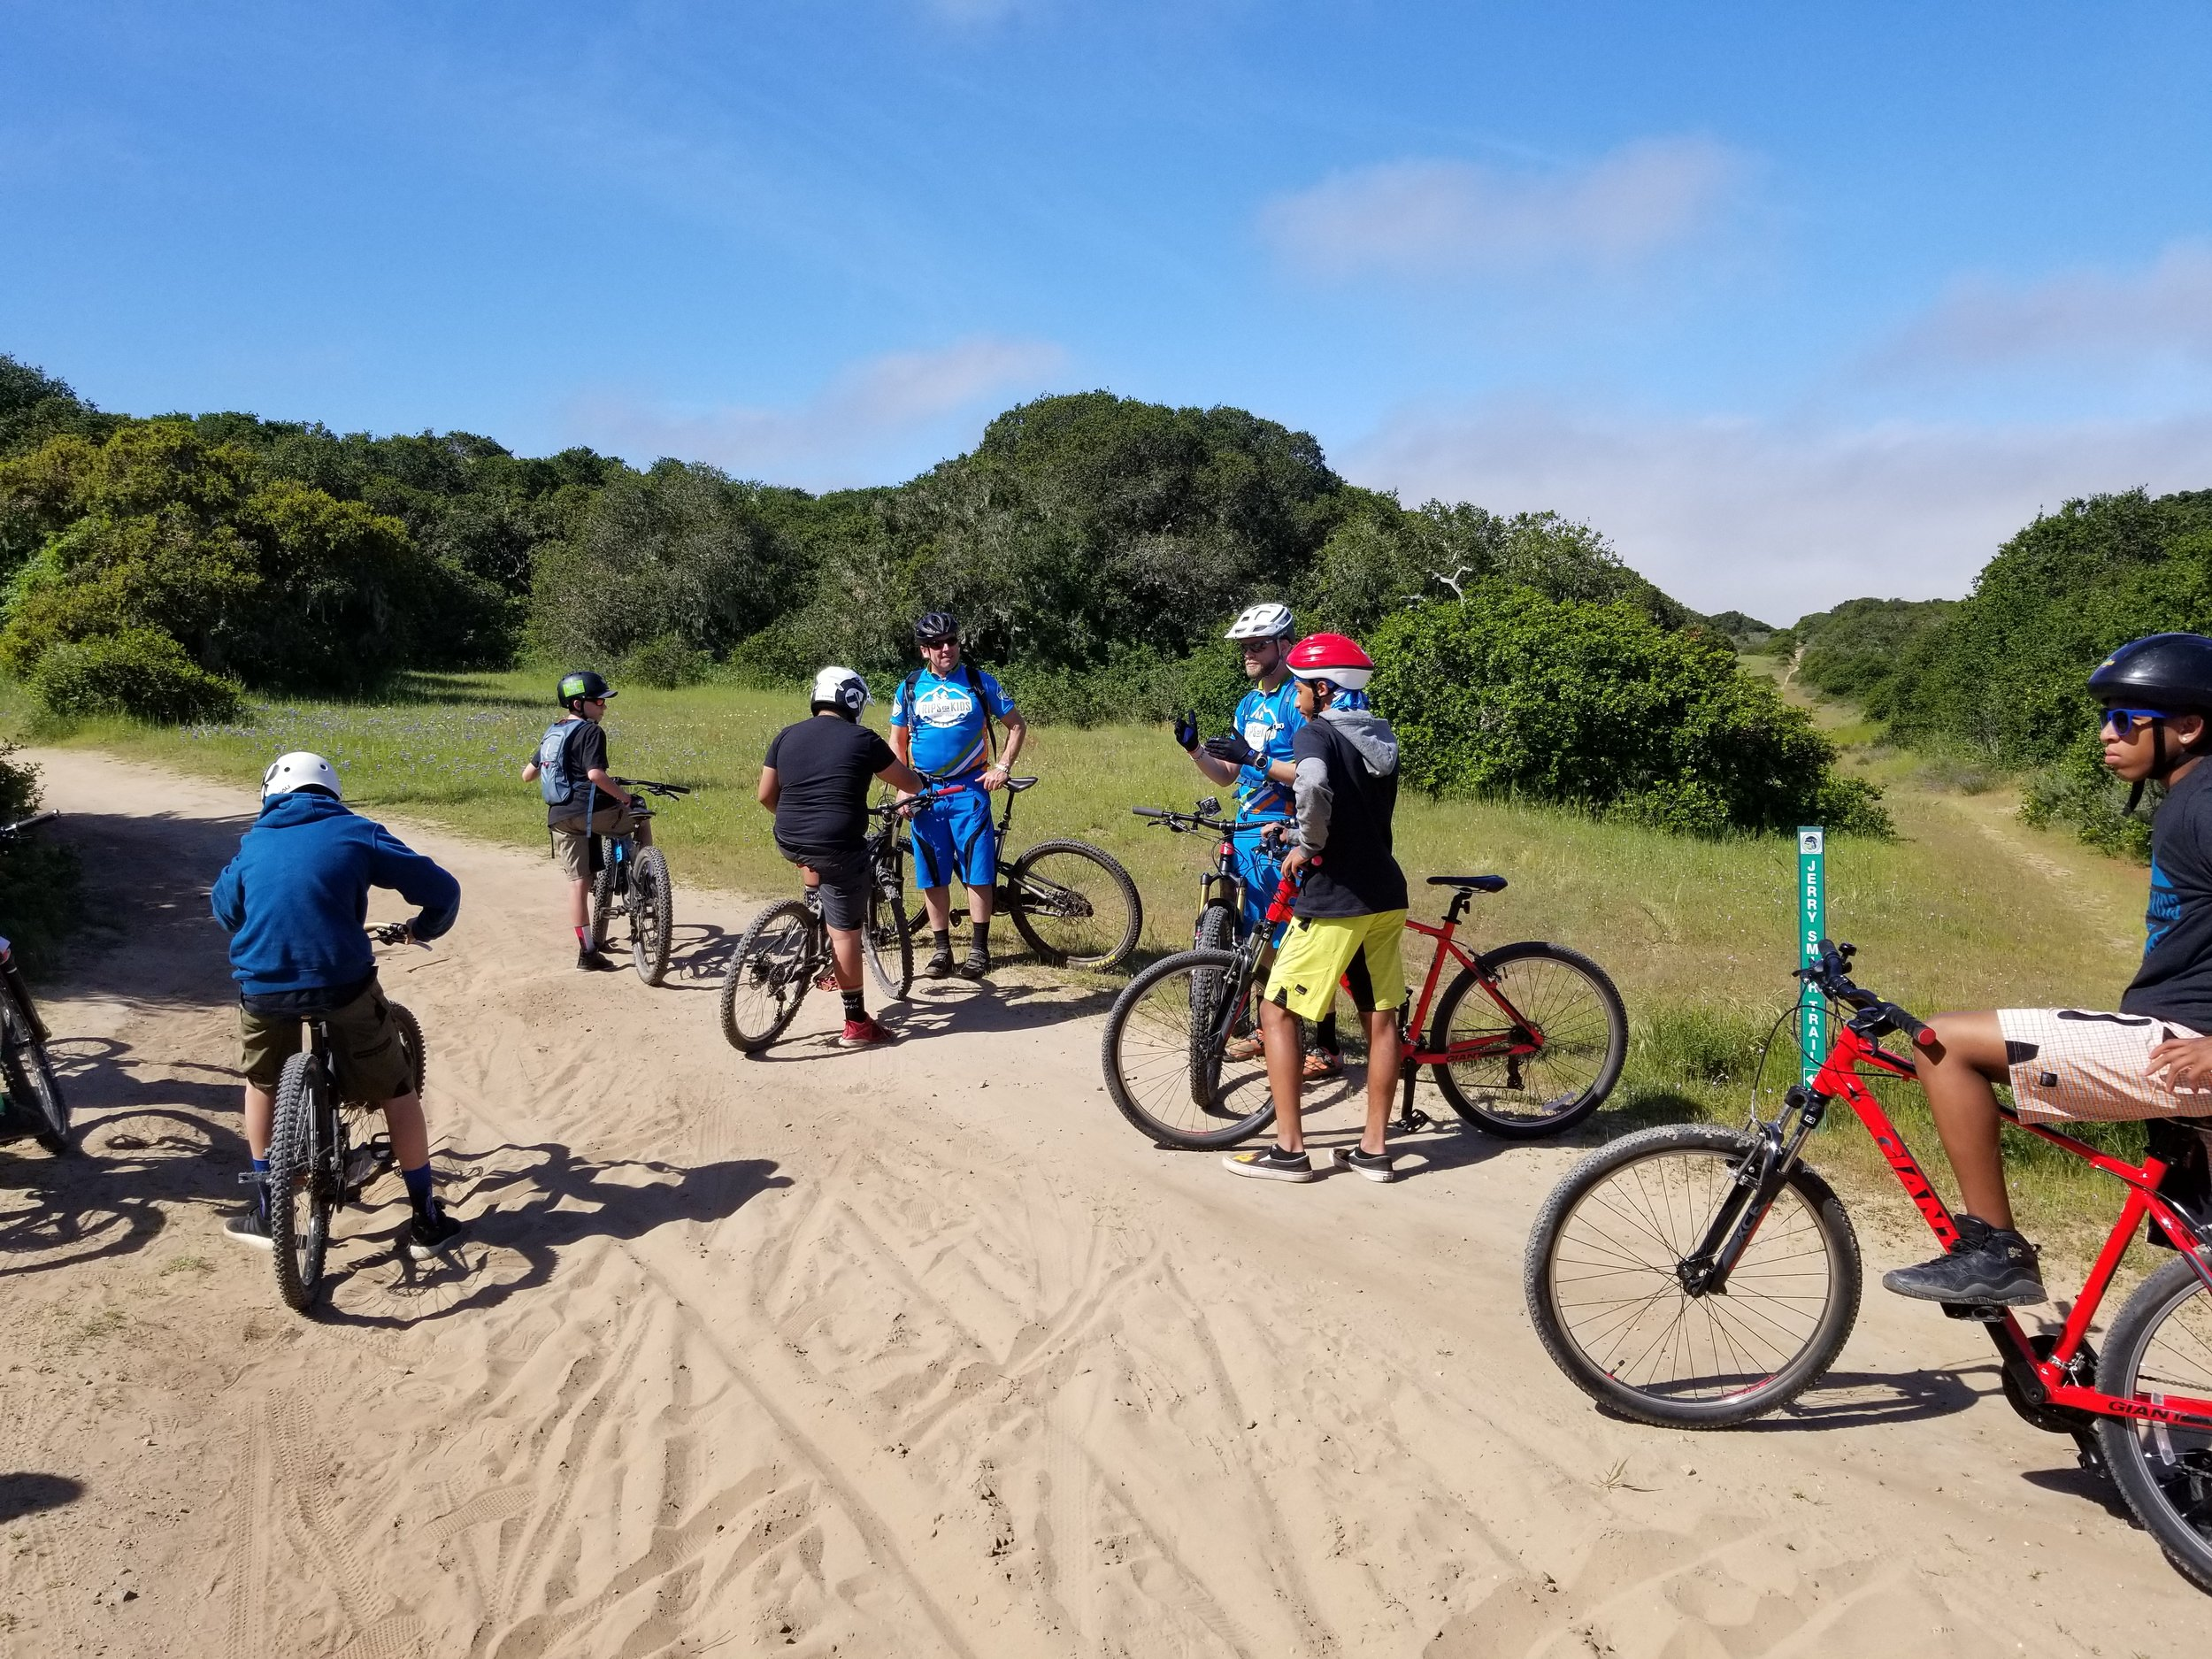 High Desert Riders_FtOrdRide_April2019.jpg